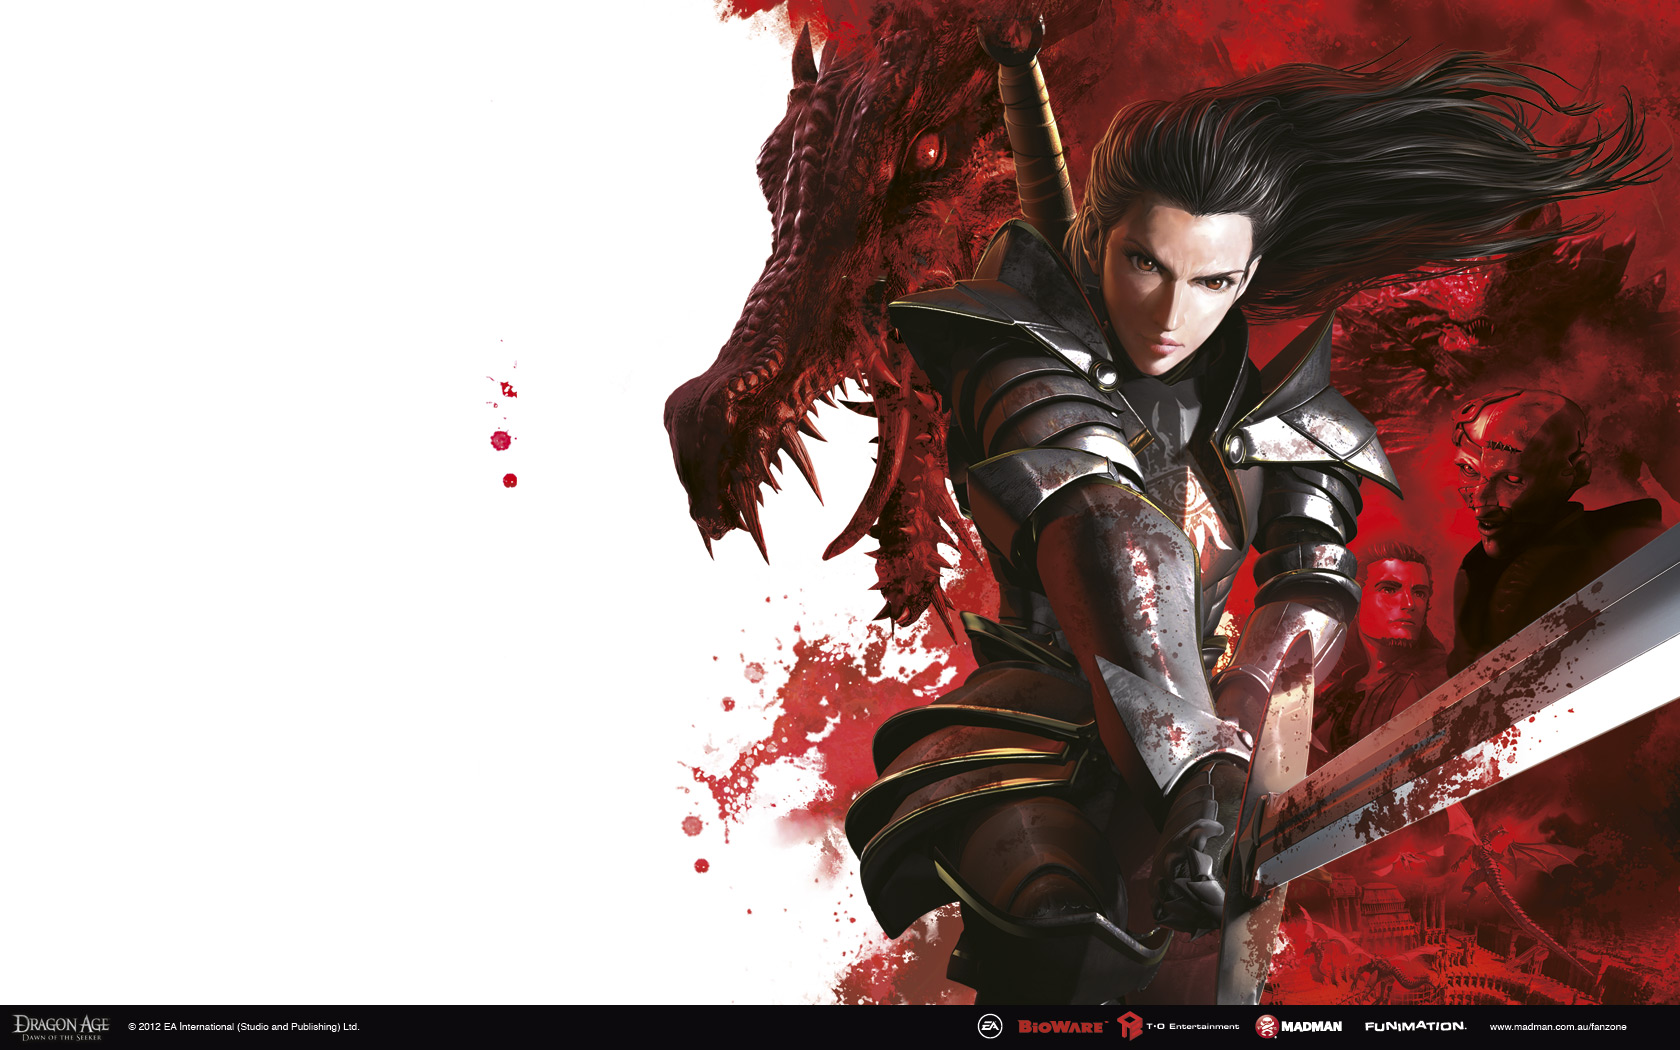 Dragon-Age-Dawn-of-the-Seeker-wallpaper.jpg